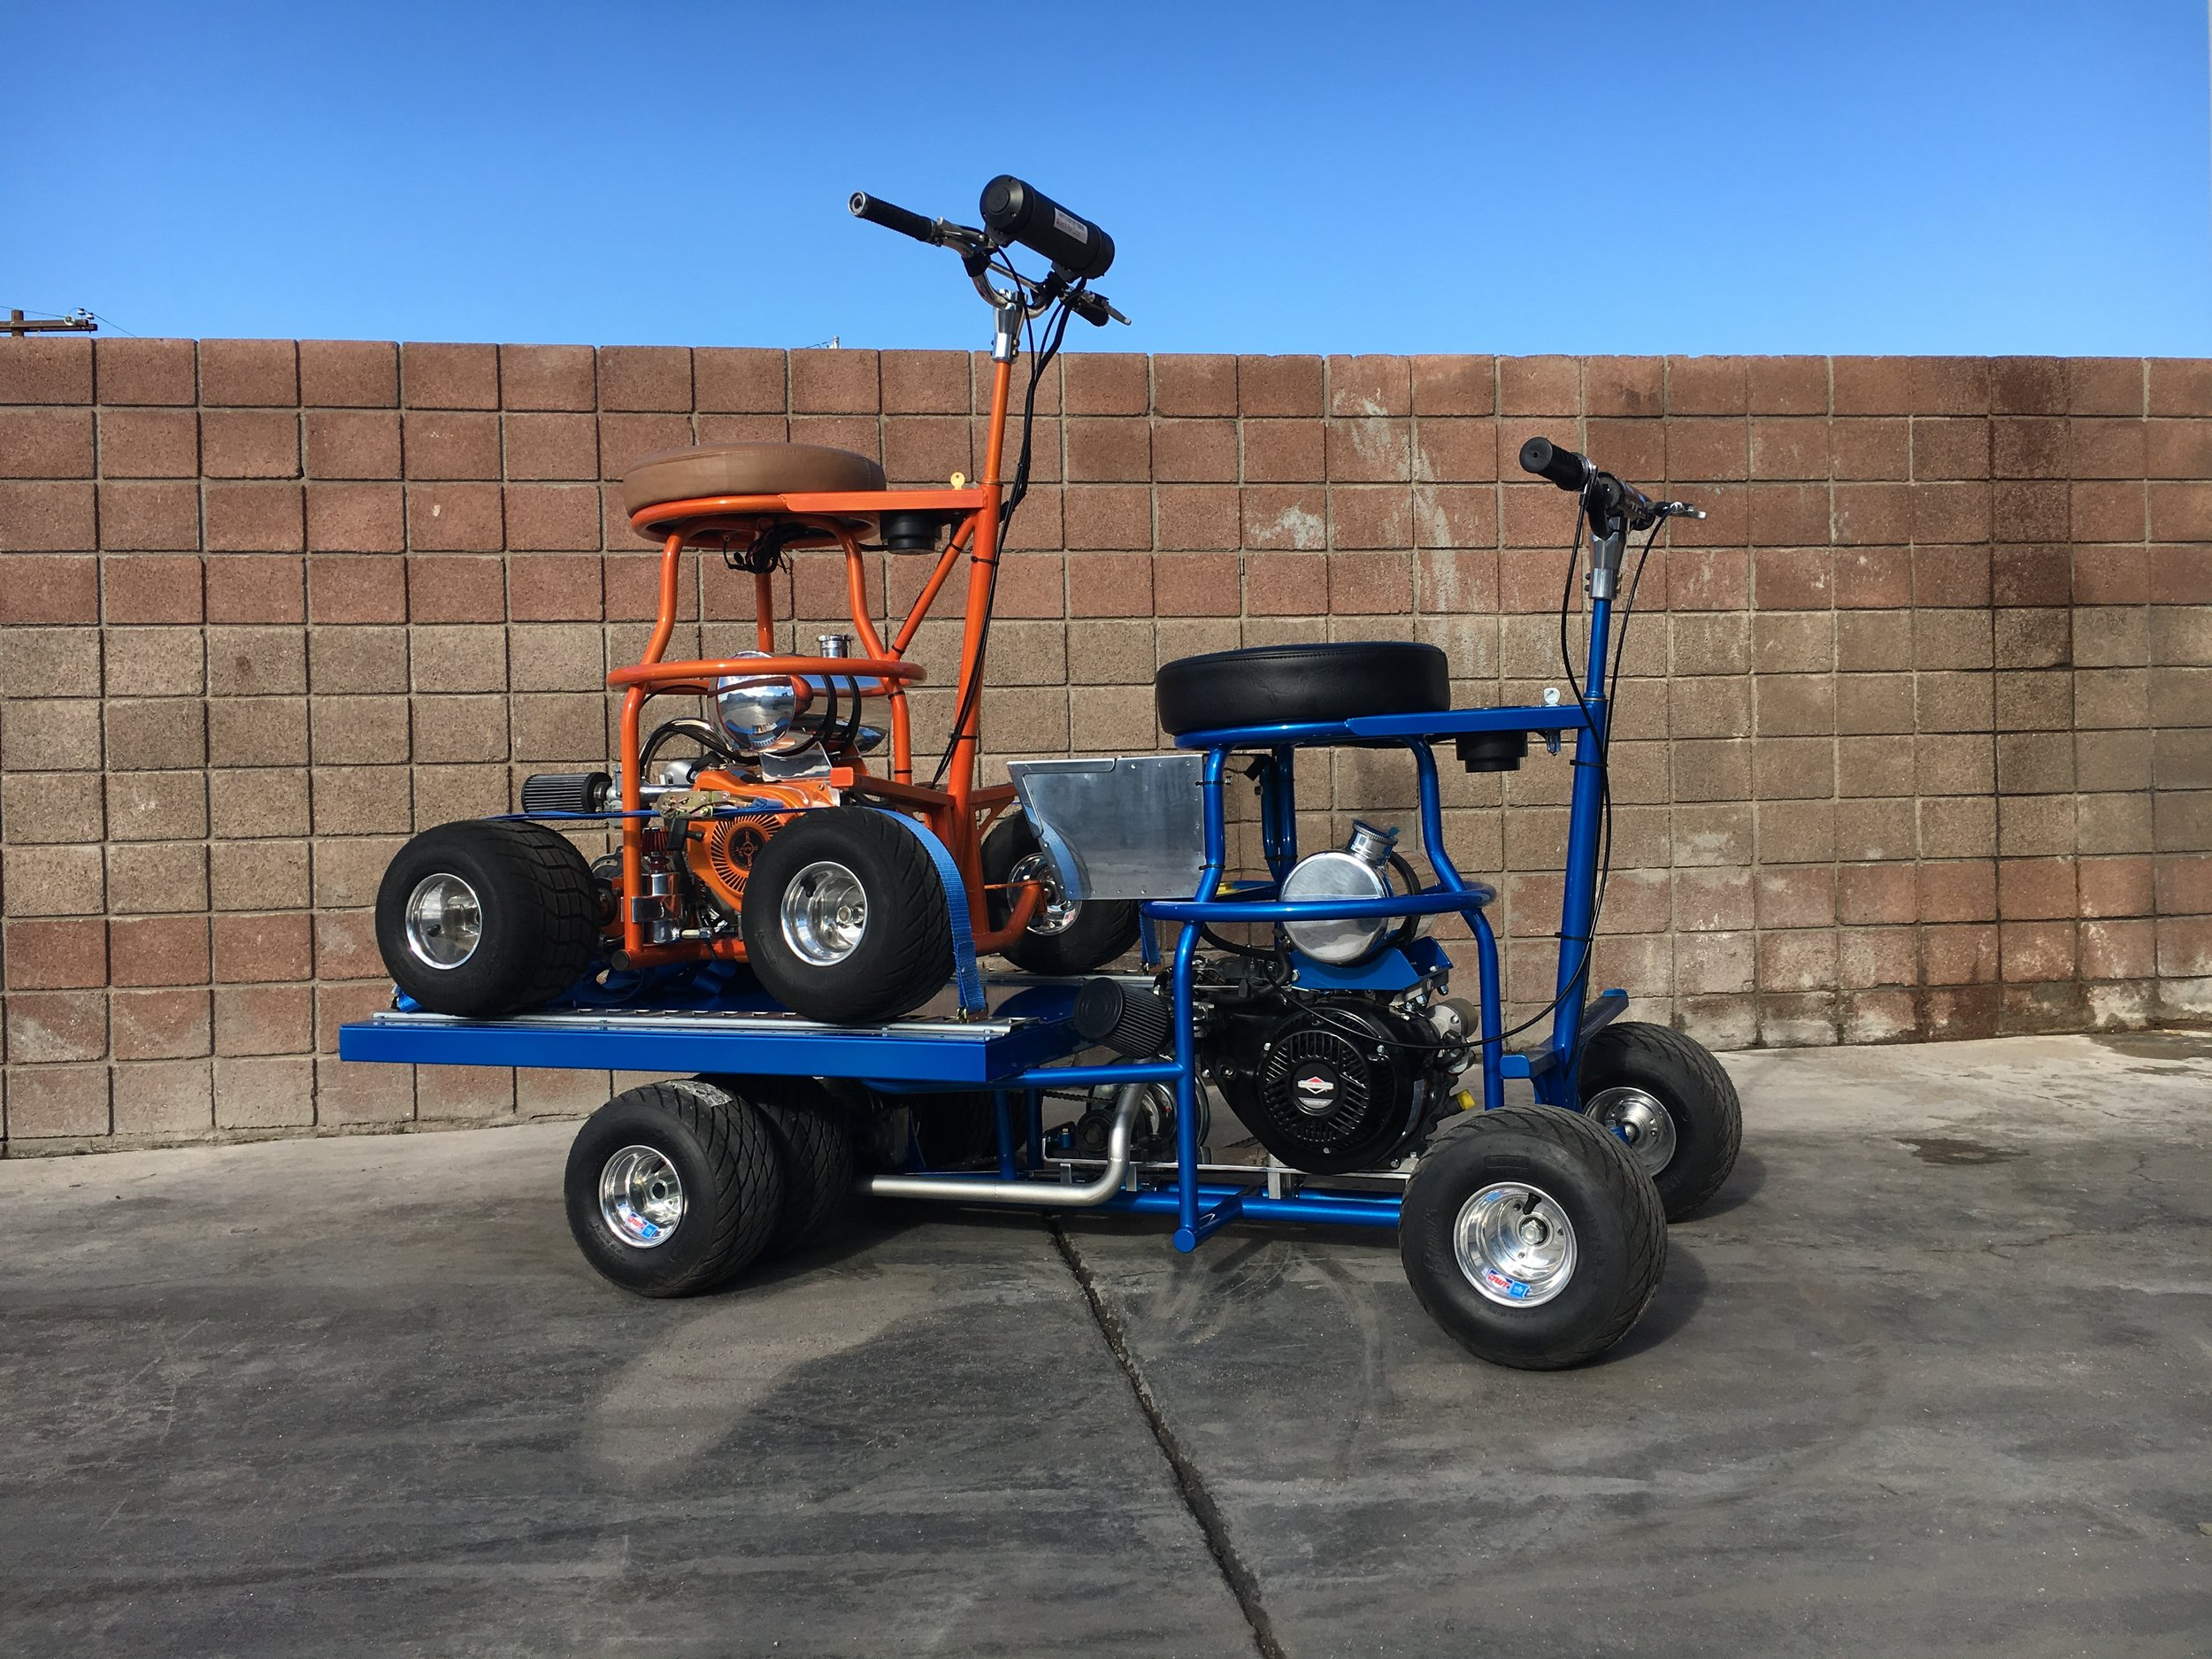 Big Chicken Barstool Racer and Truck